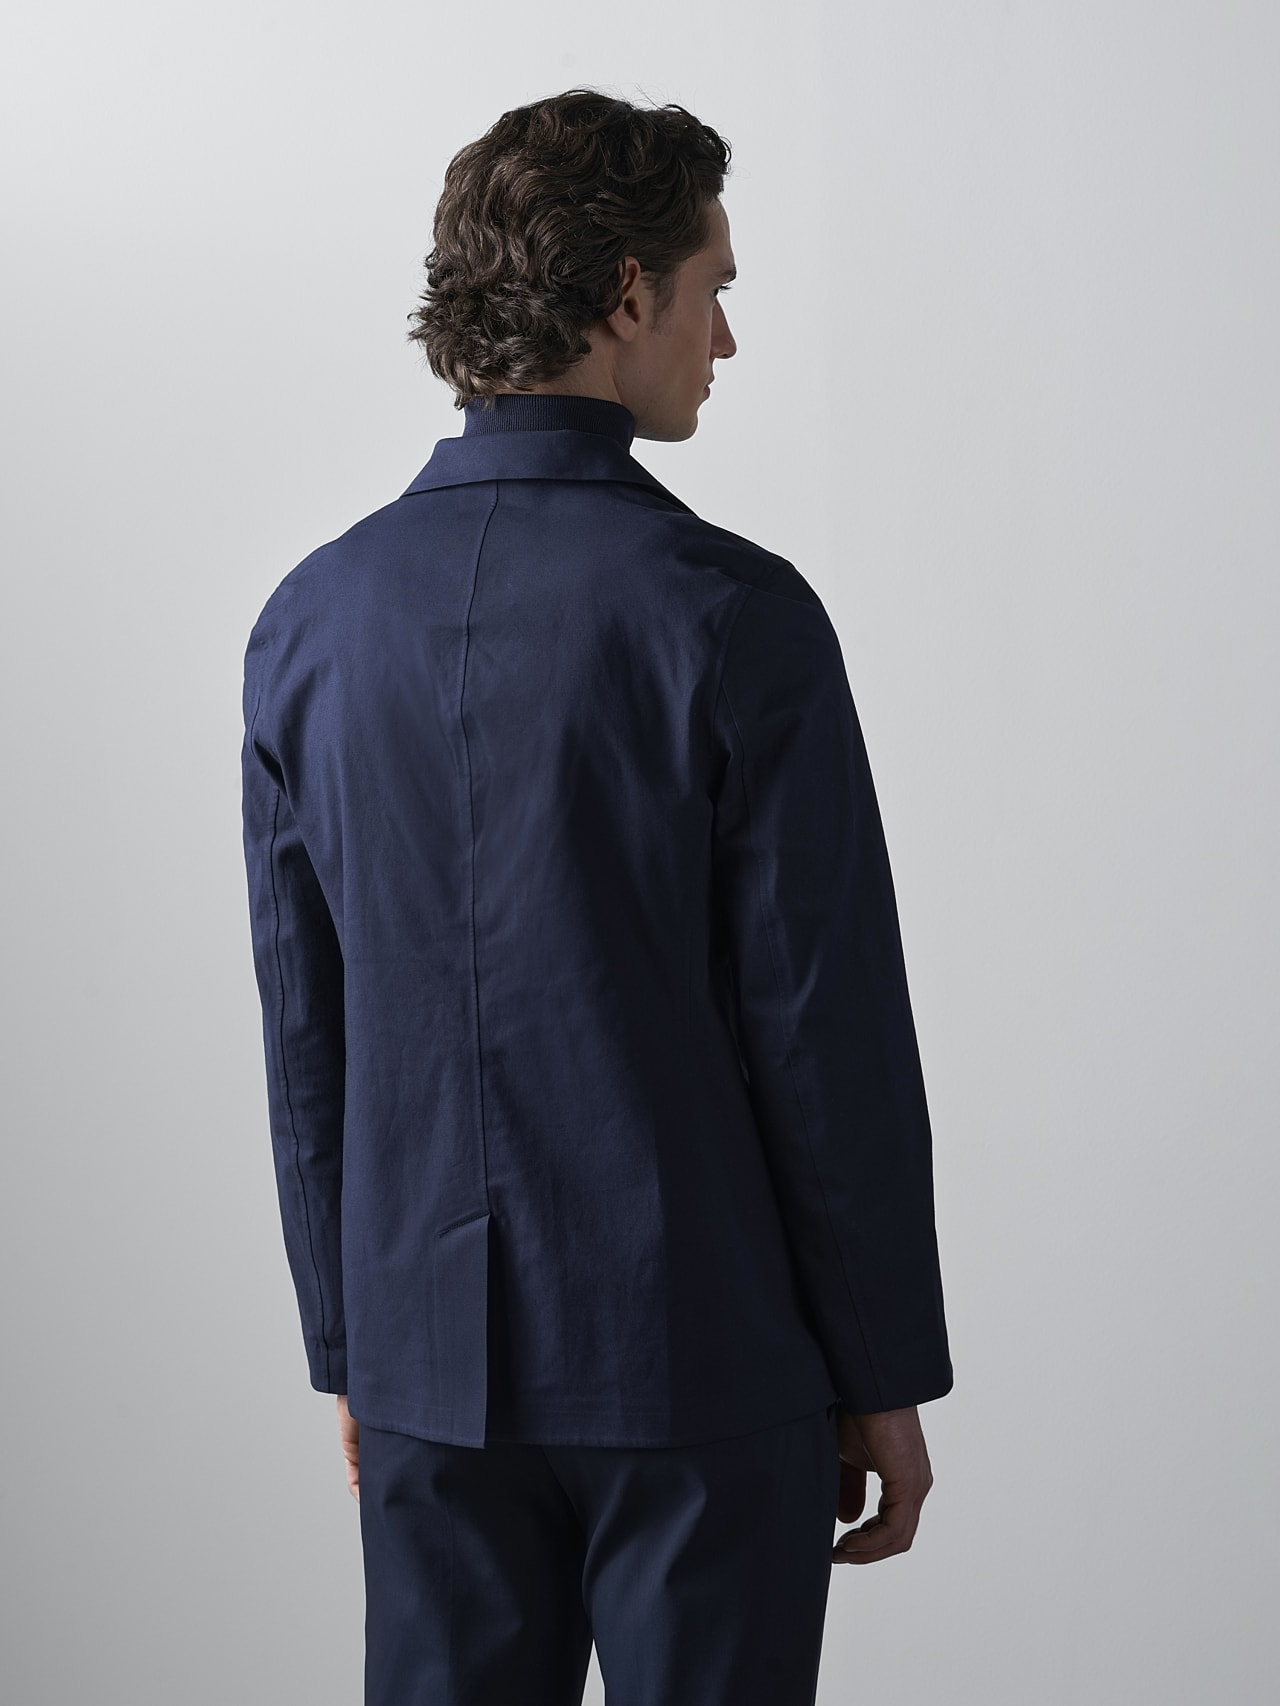 OBOSS V3.Y5.02 Packable and Waterproof Blazer navy Front Main Alpha Tauri